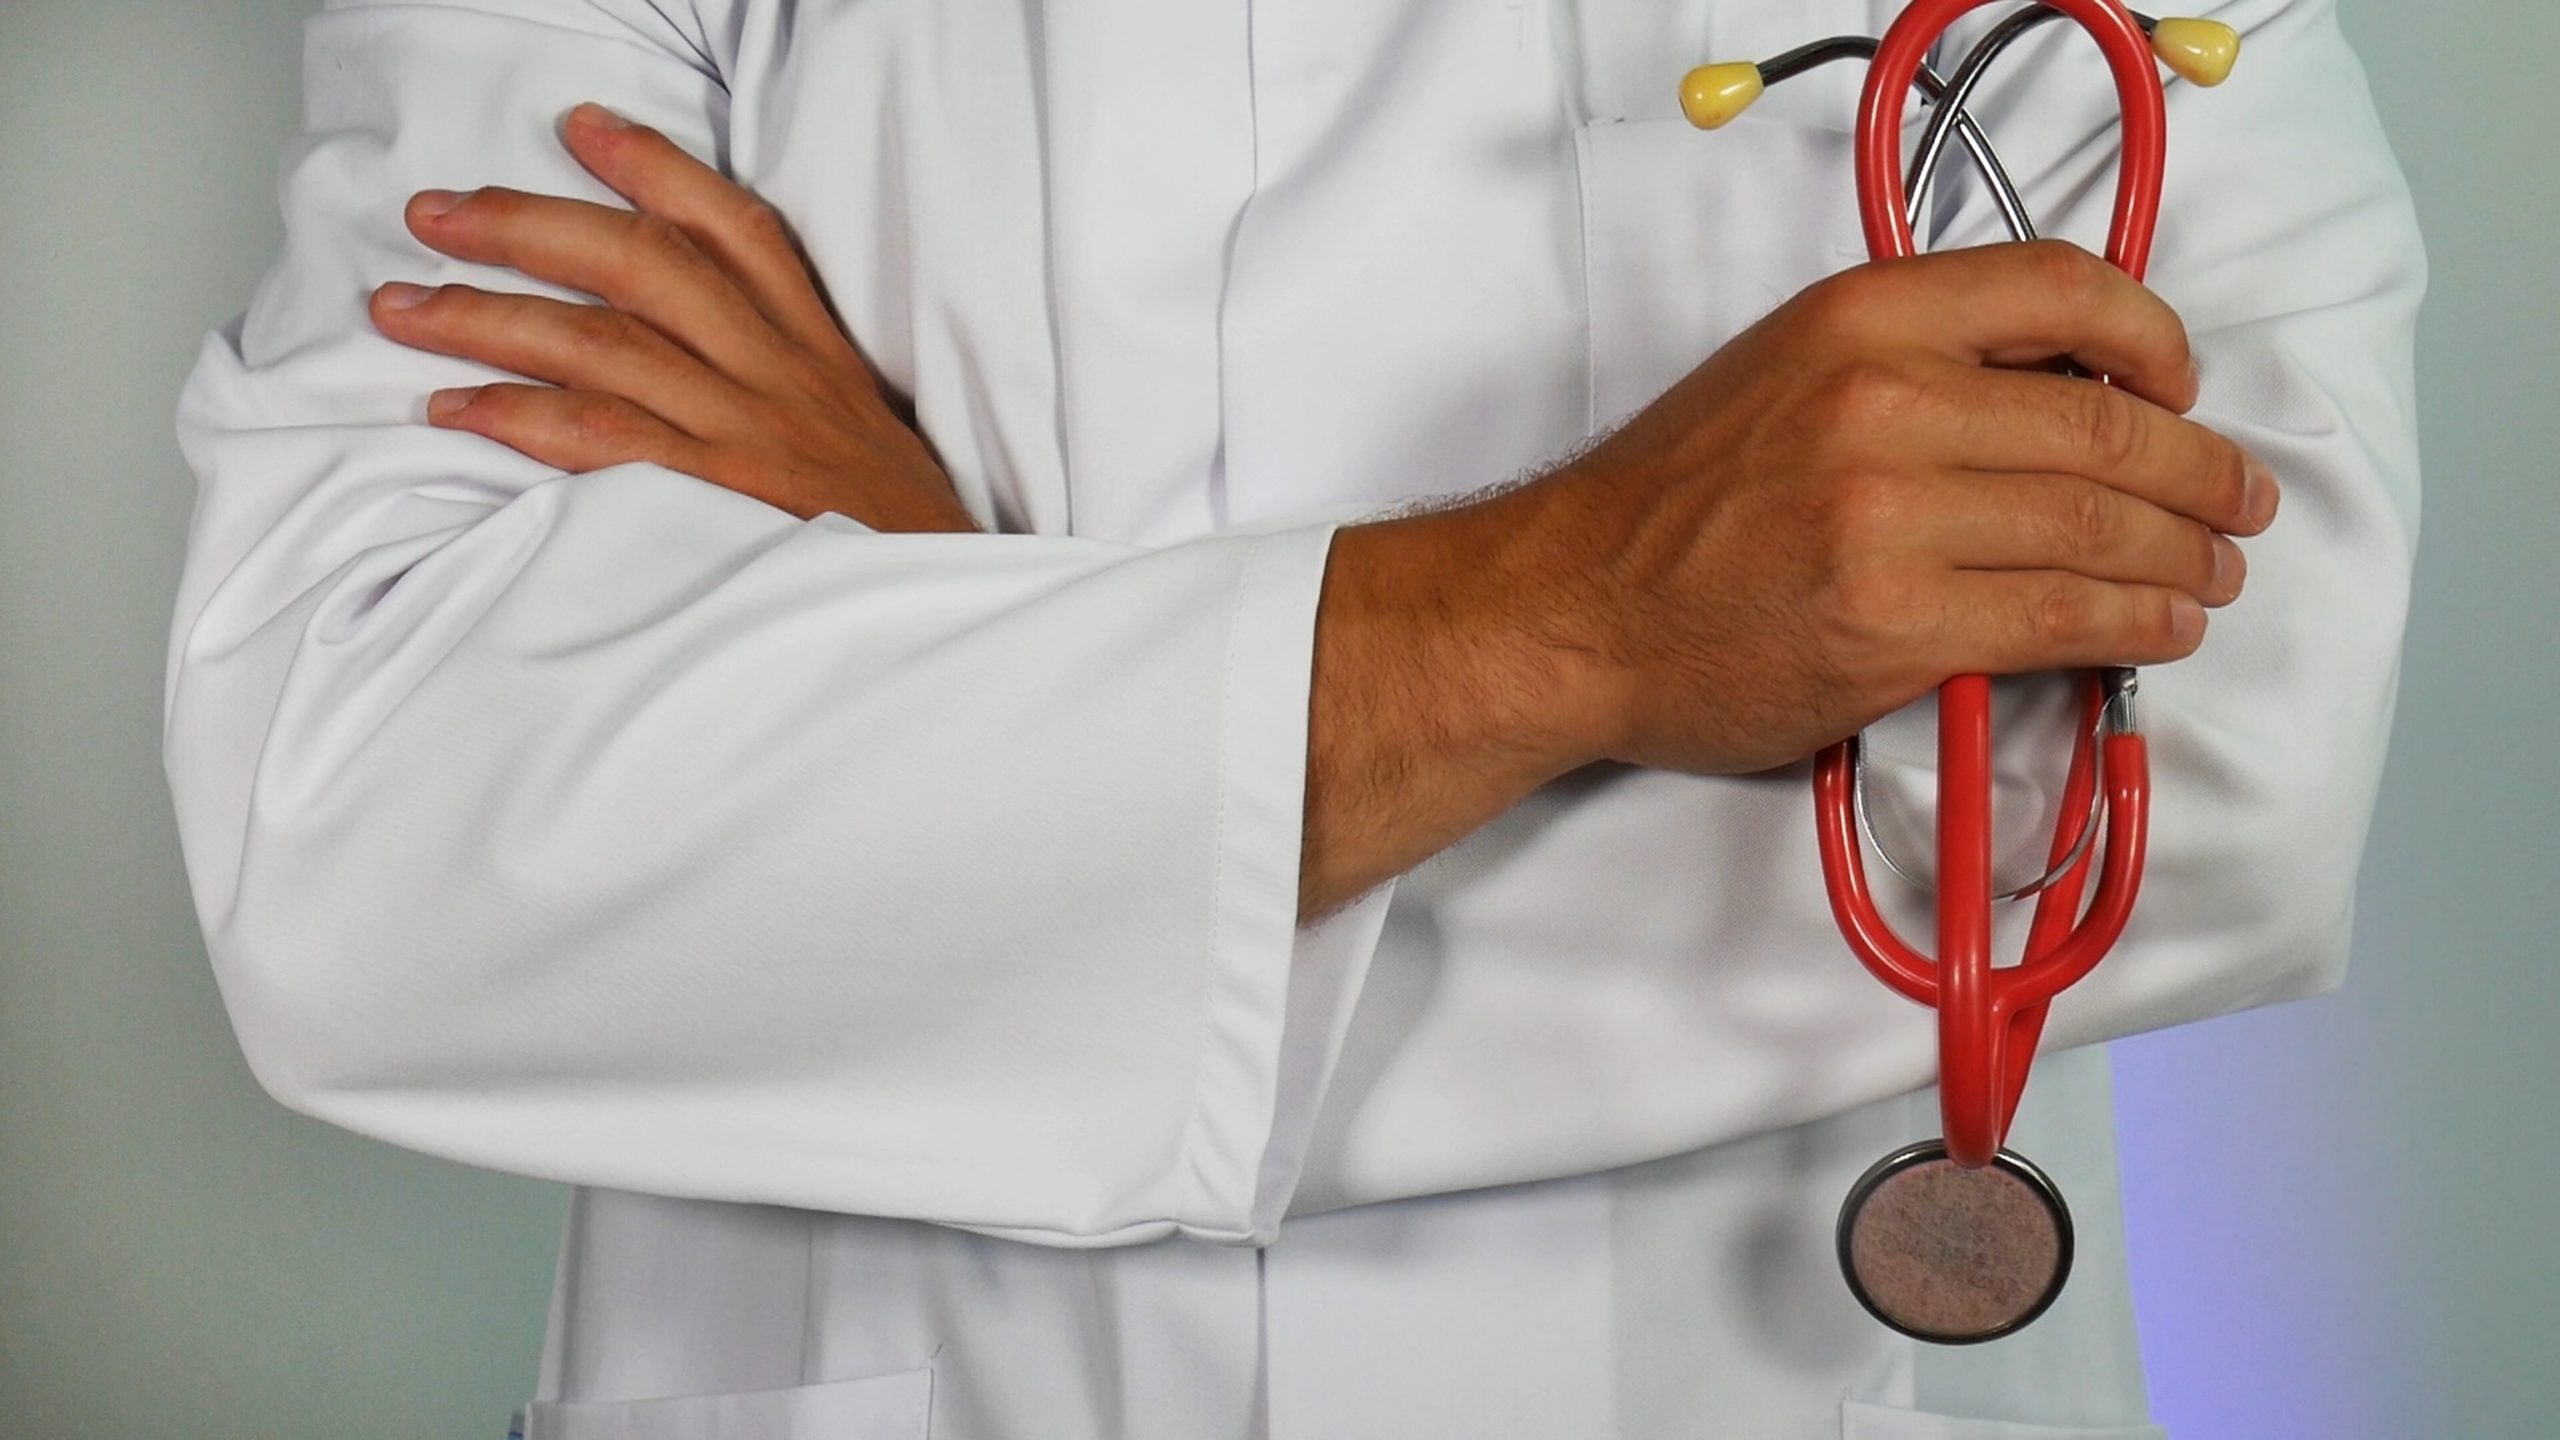 Image: a man standing with his arms cross over his chest. He is wearing a lab coat and holds a stethoscope in his hand.